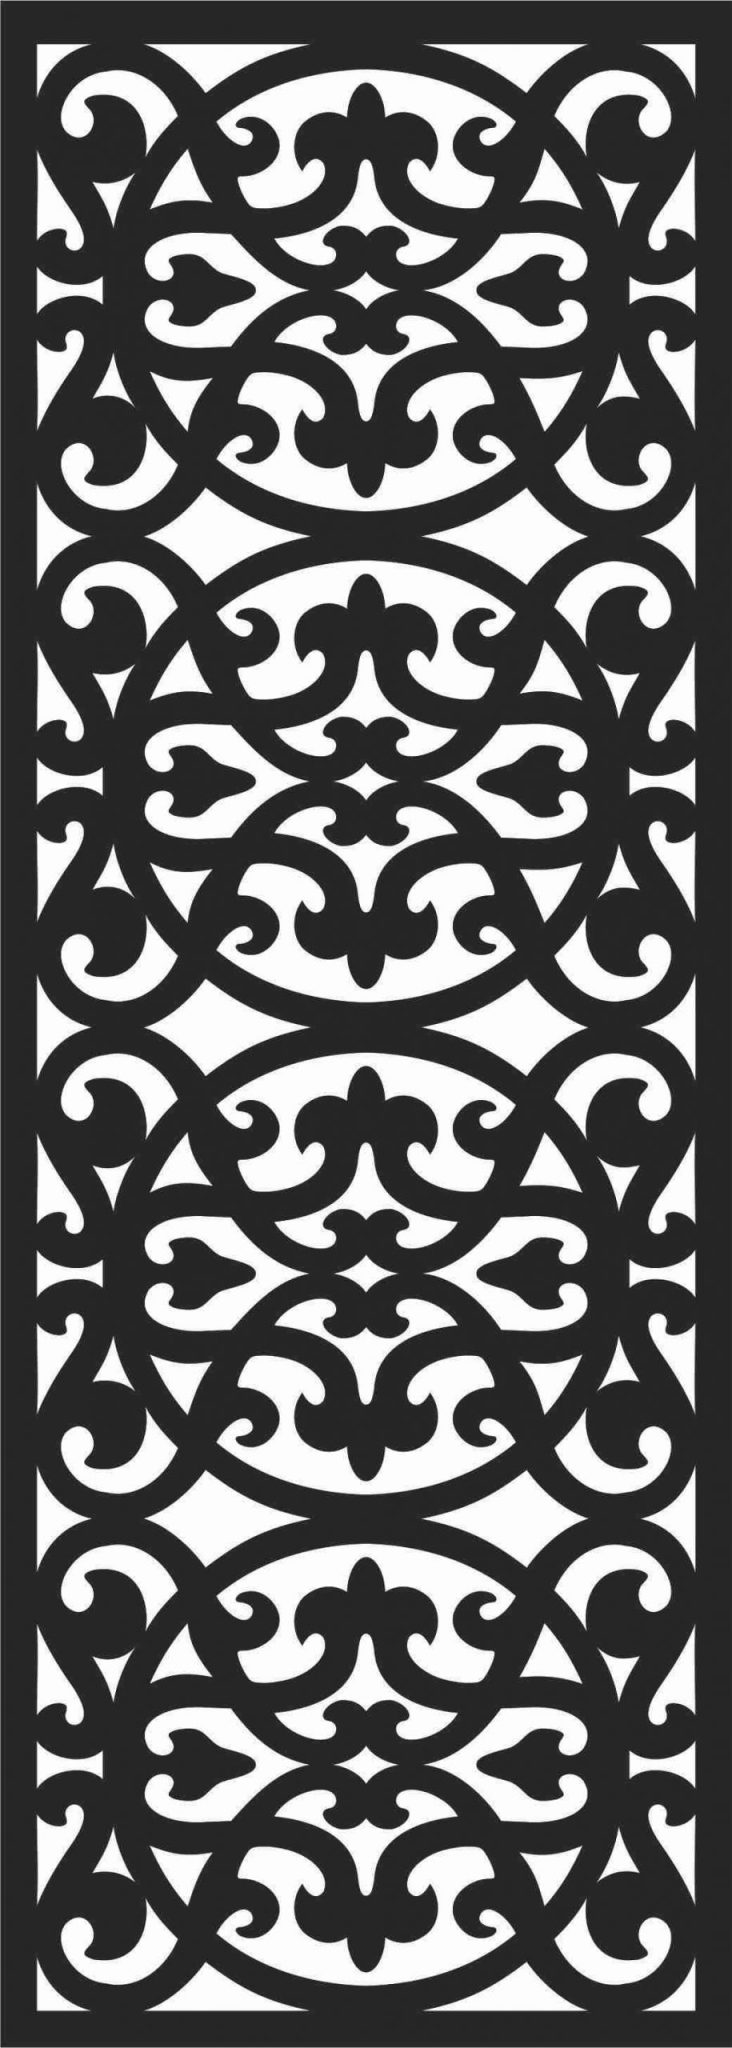 Decorative Screen Patterns For Laser Cutting 57 Free DXF File